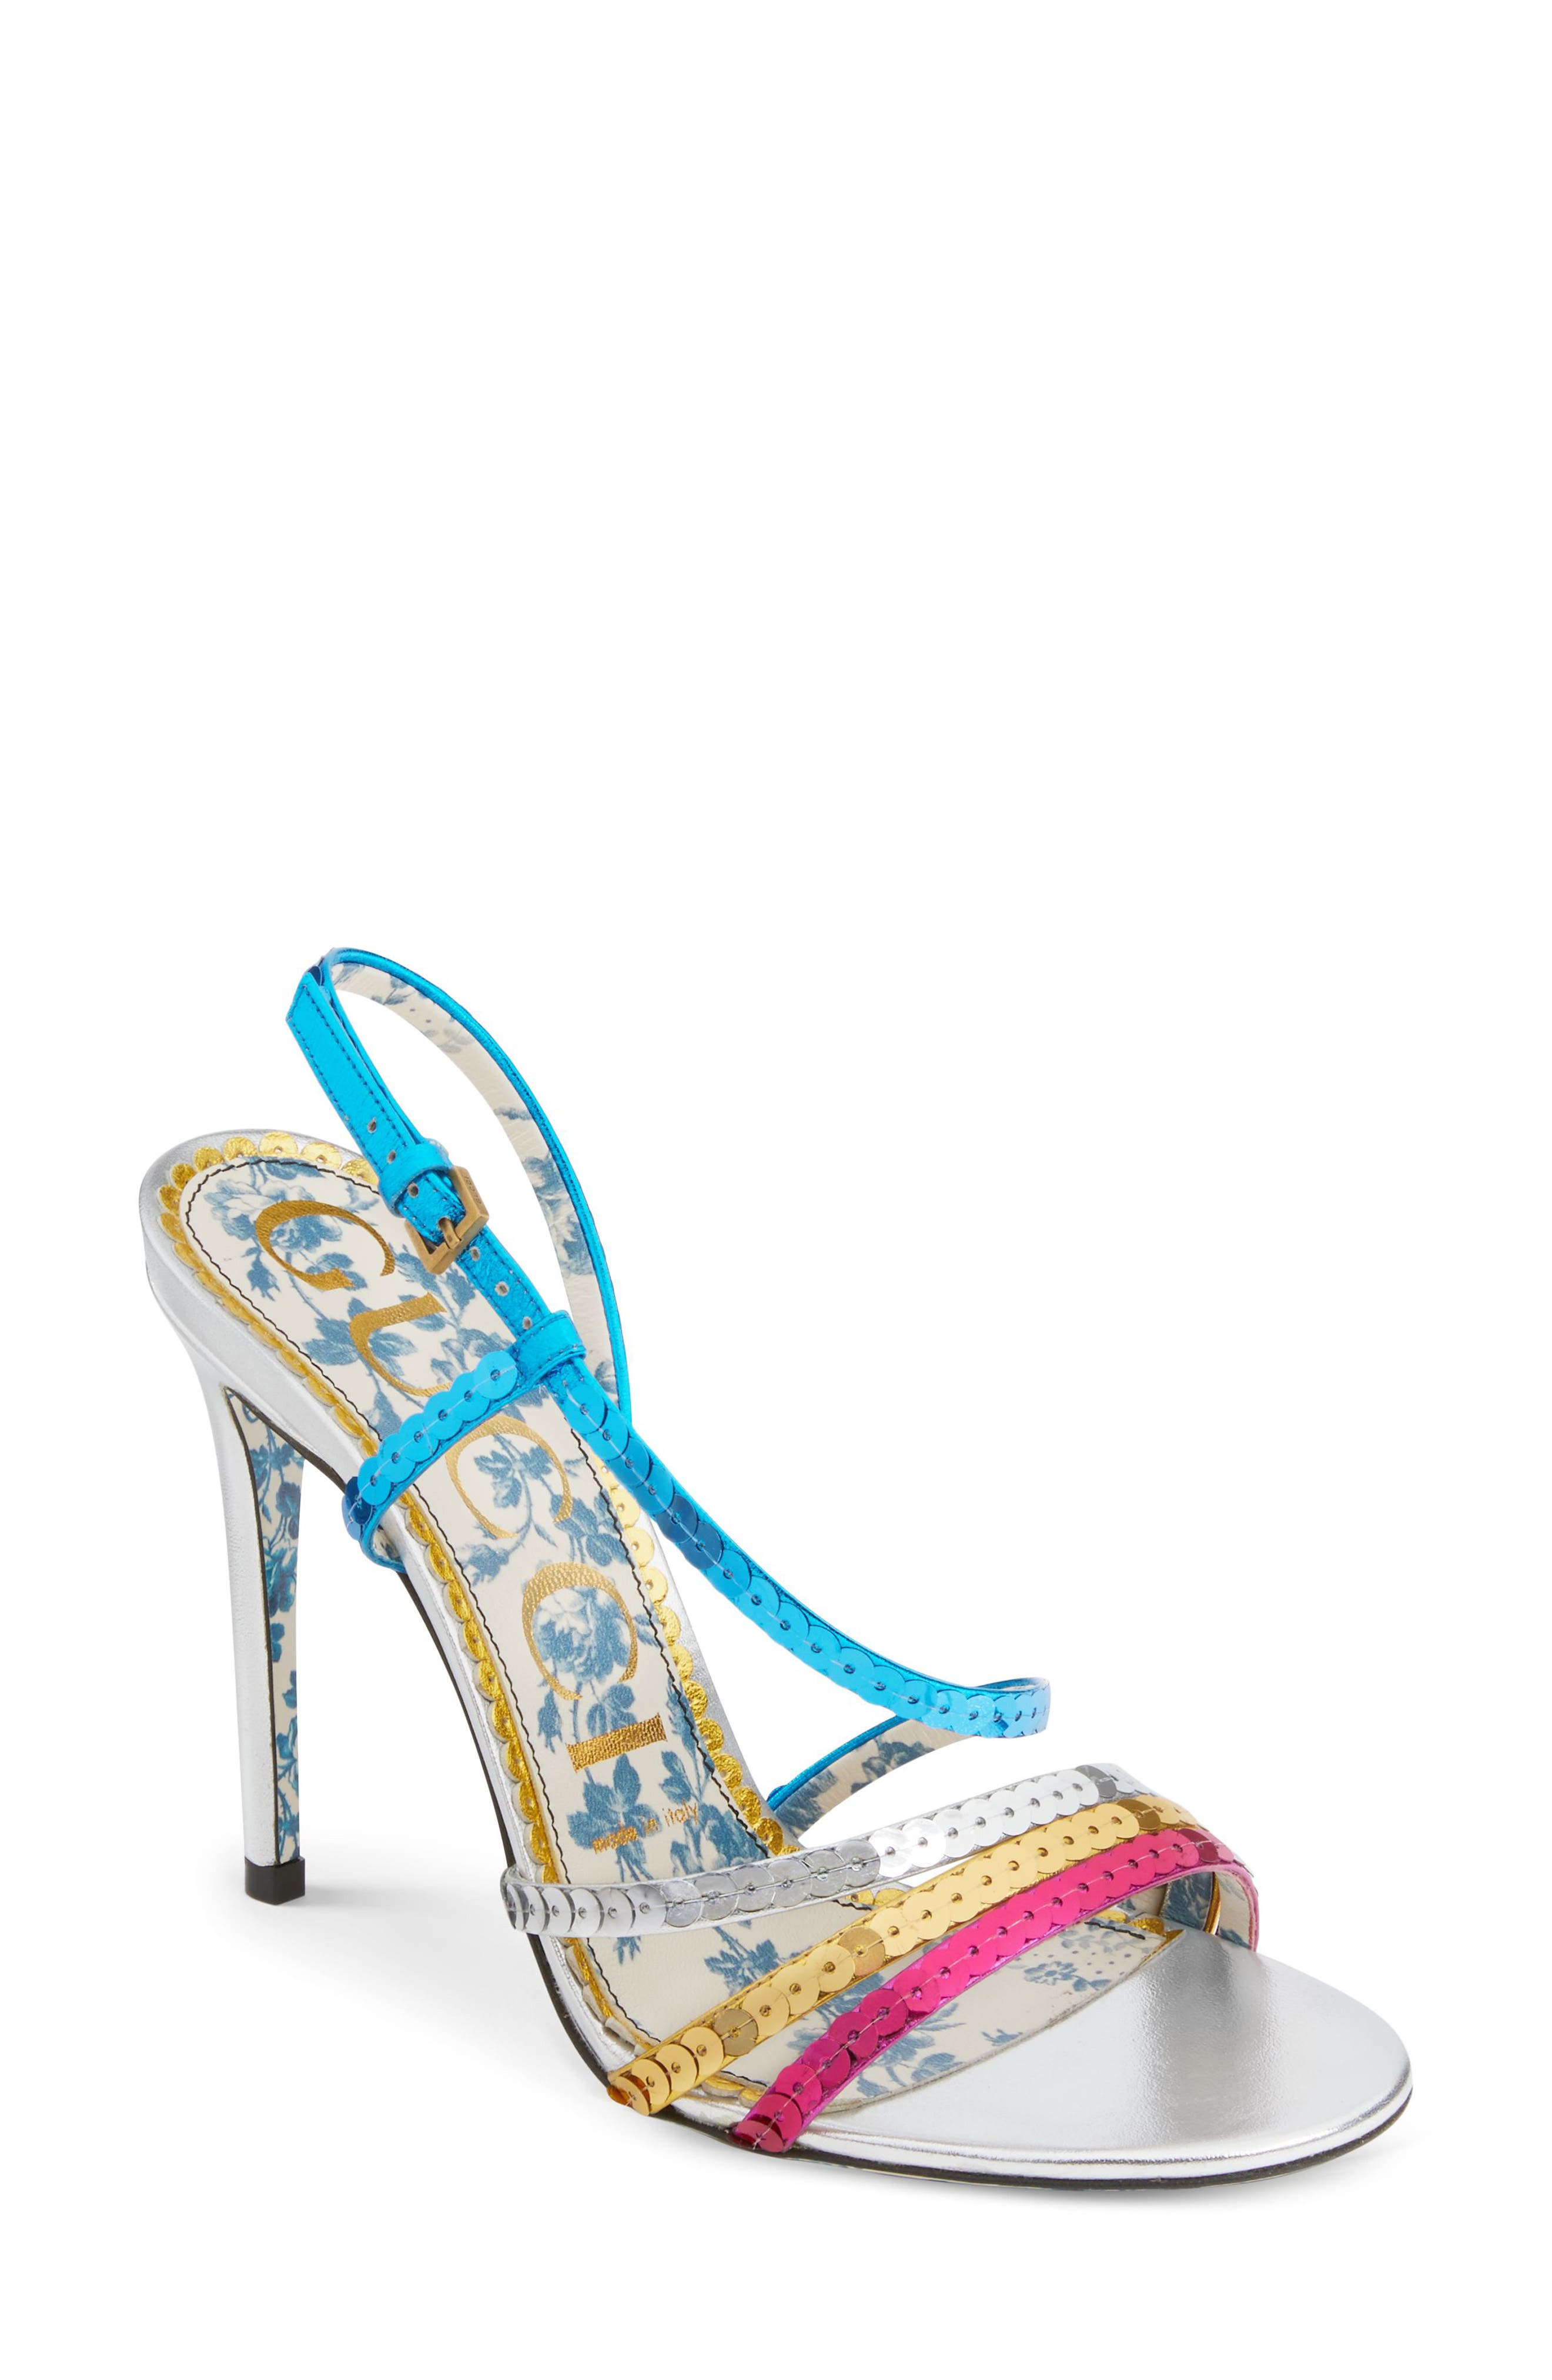 Gucci Haines Sequin Sandal (Women)